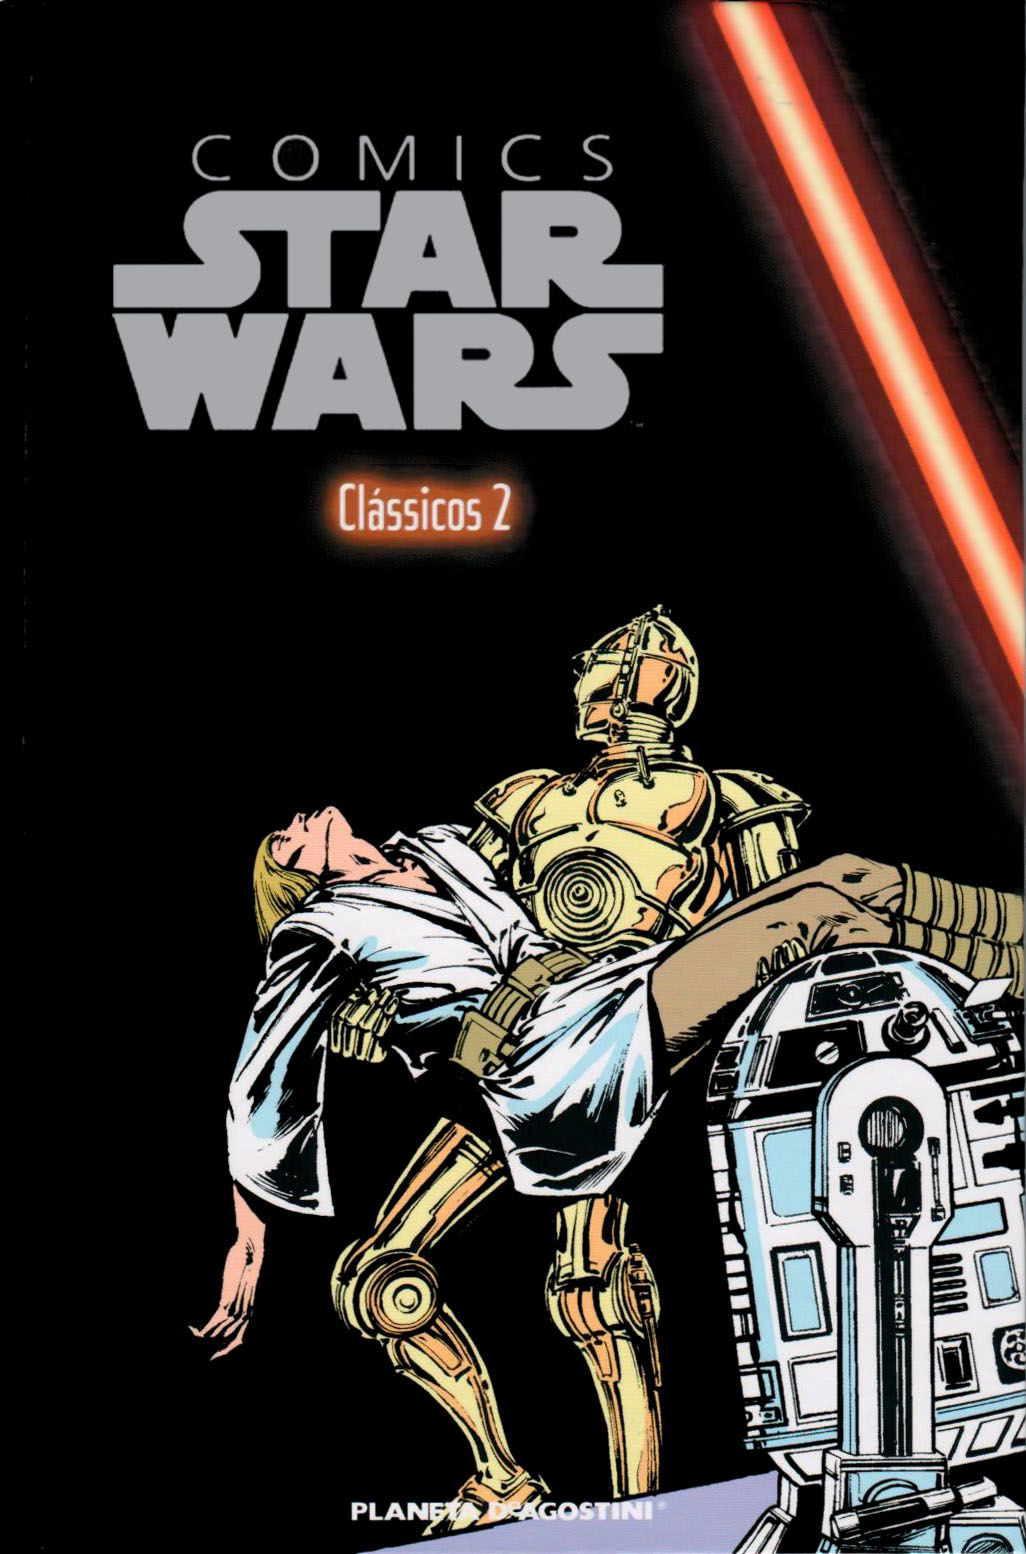 Star Wars Clássicos 1